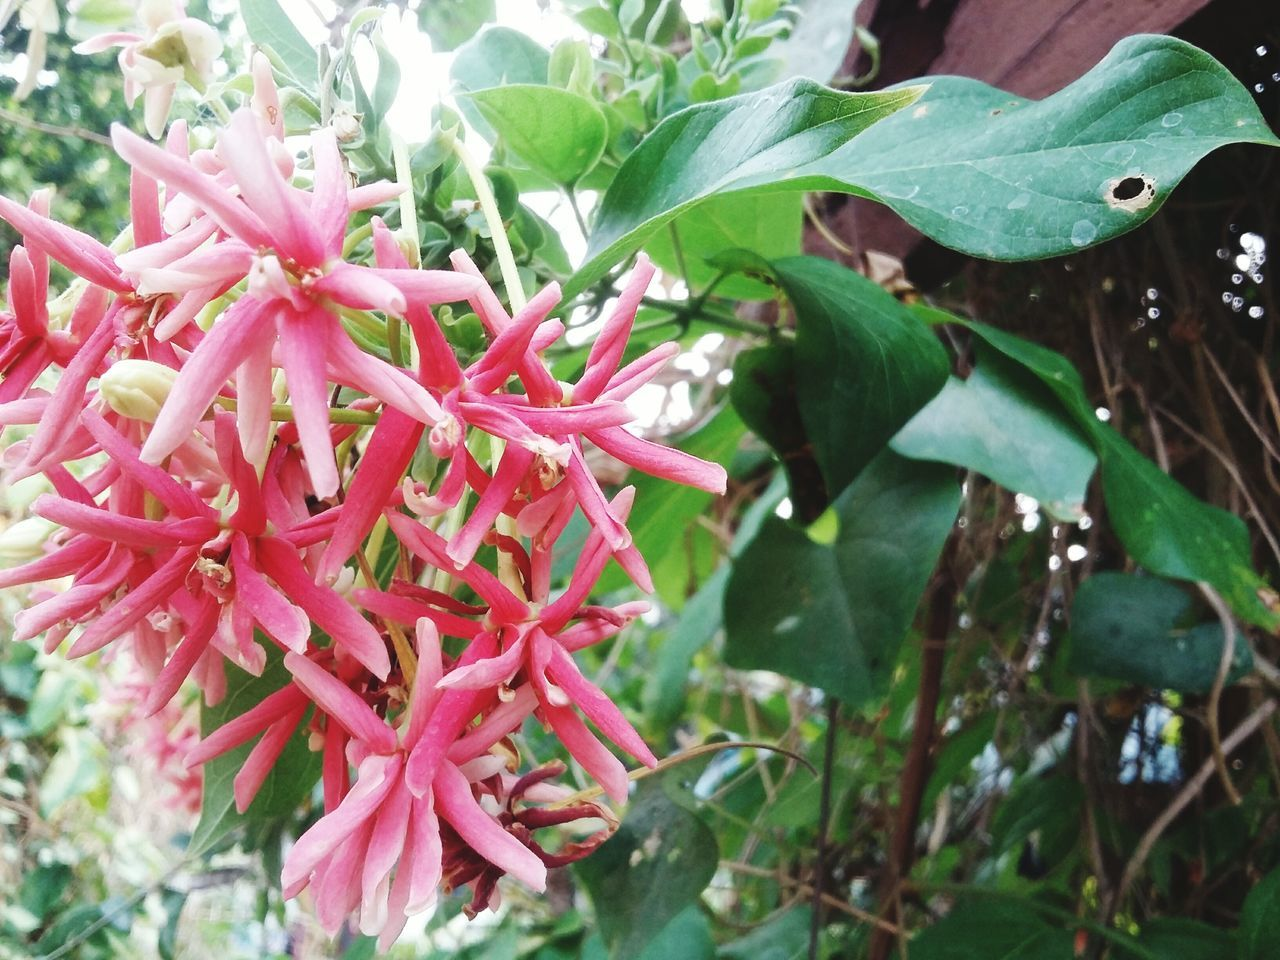 growth, nature, red, plant, outdoors, day, beauty in nature, leaf, fragility, petal, freshness, no people, close-up, flower head, flower, blooming, water